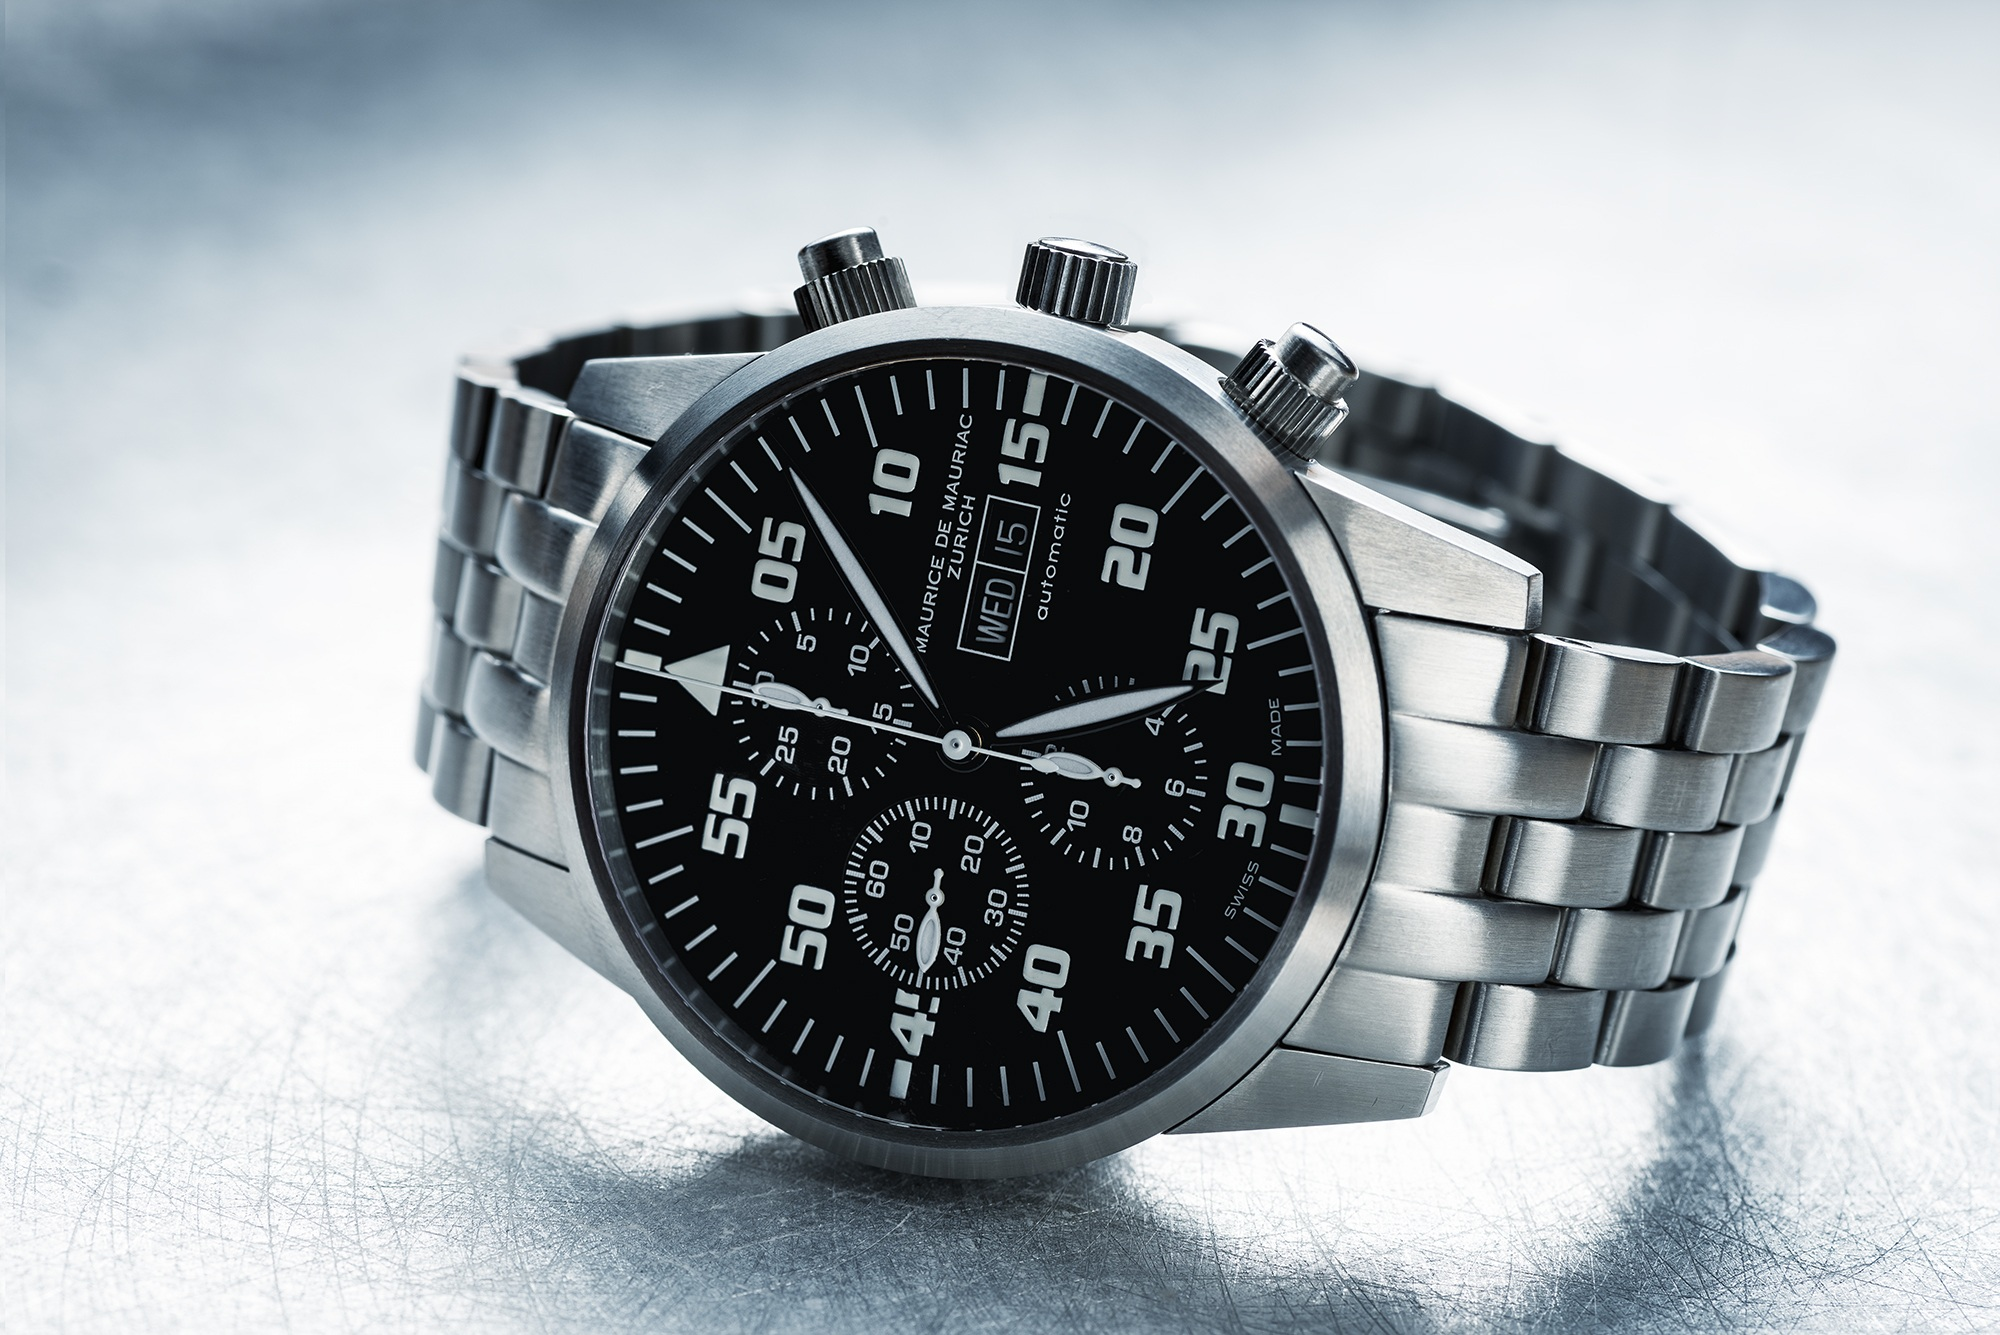 WATCH SALE AND REPAIR